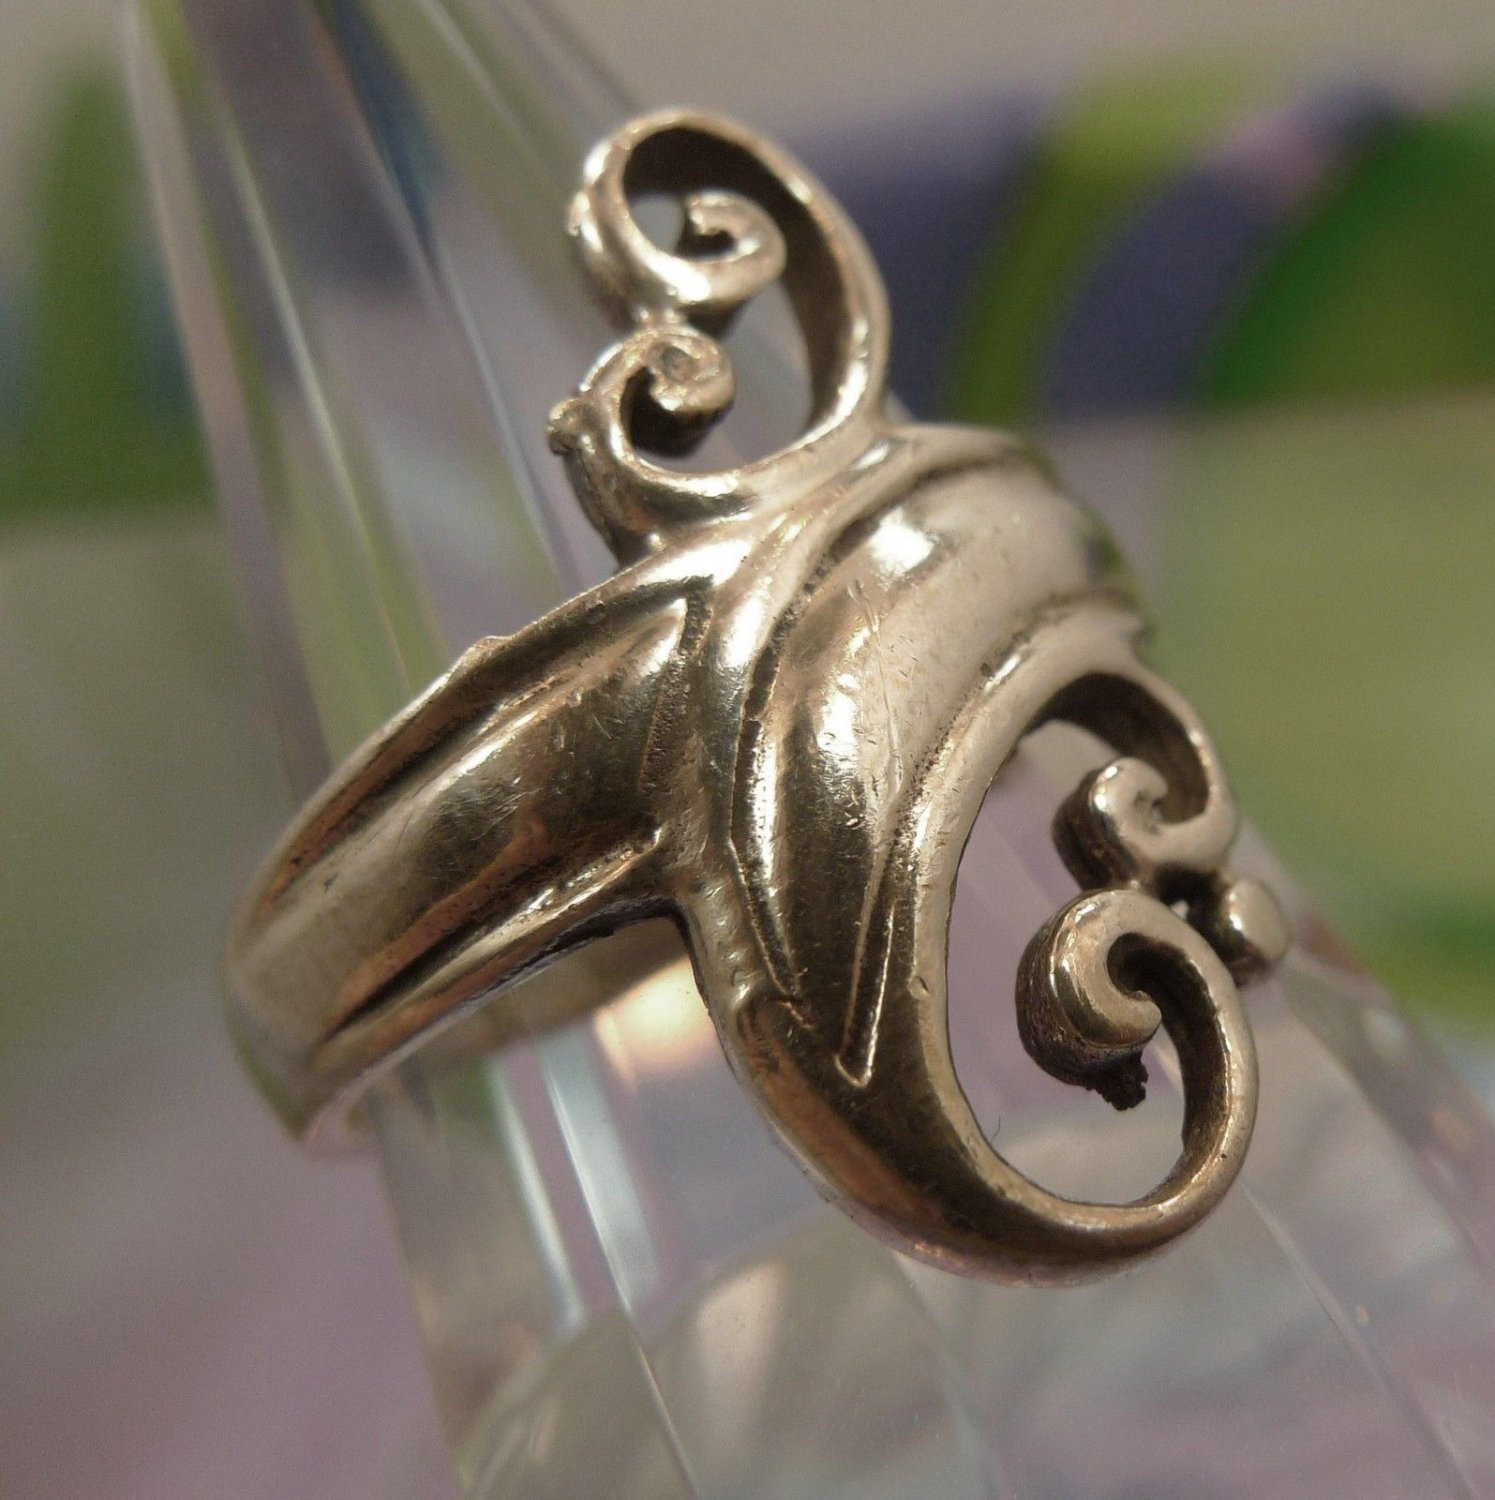 Size 9 Ring : Vintage Tall Sterling 925 Silver Swirling Art Deco Design